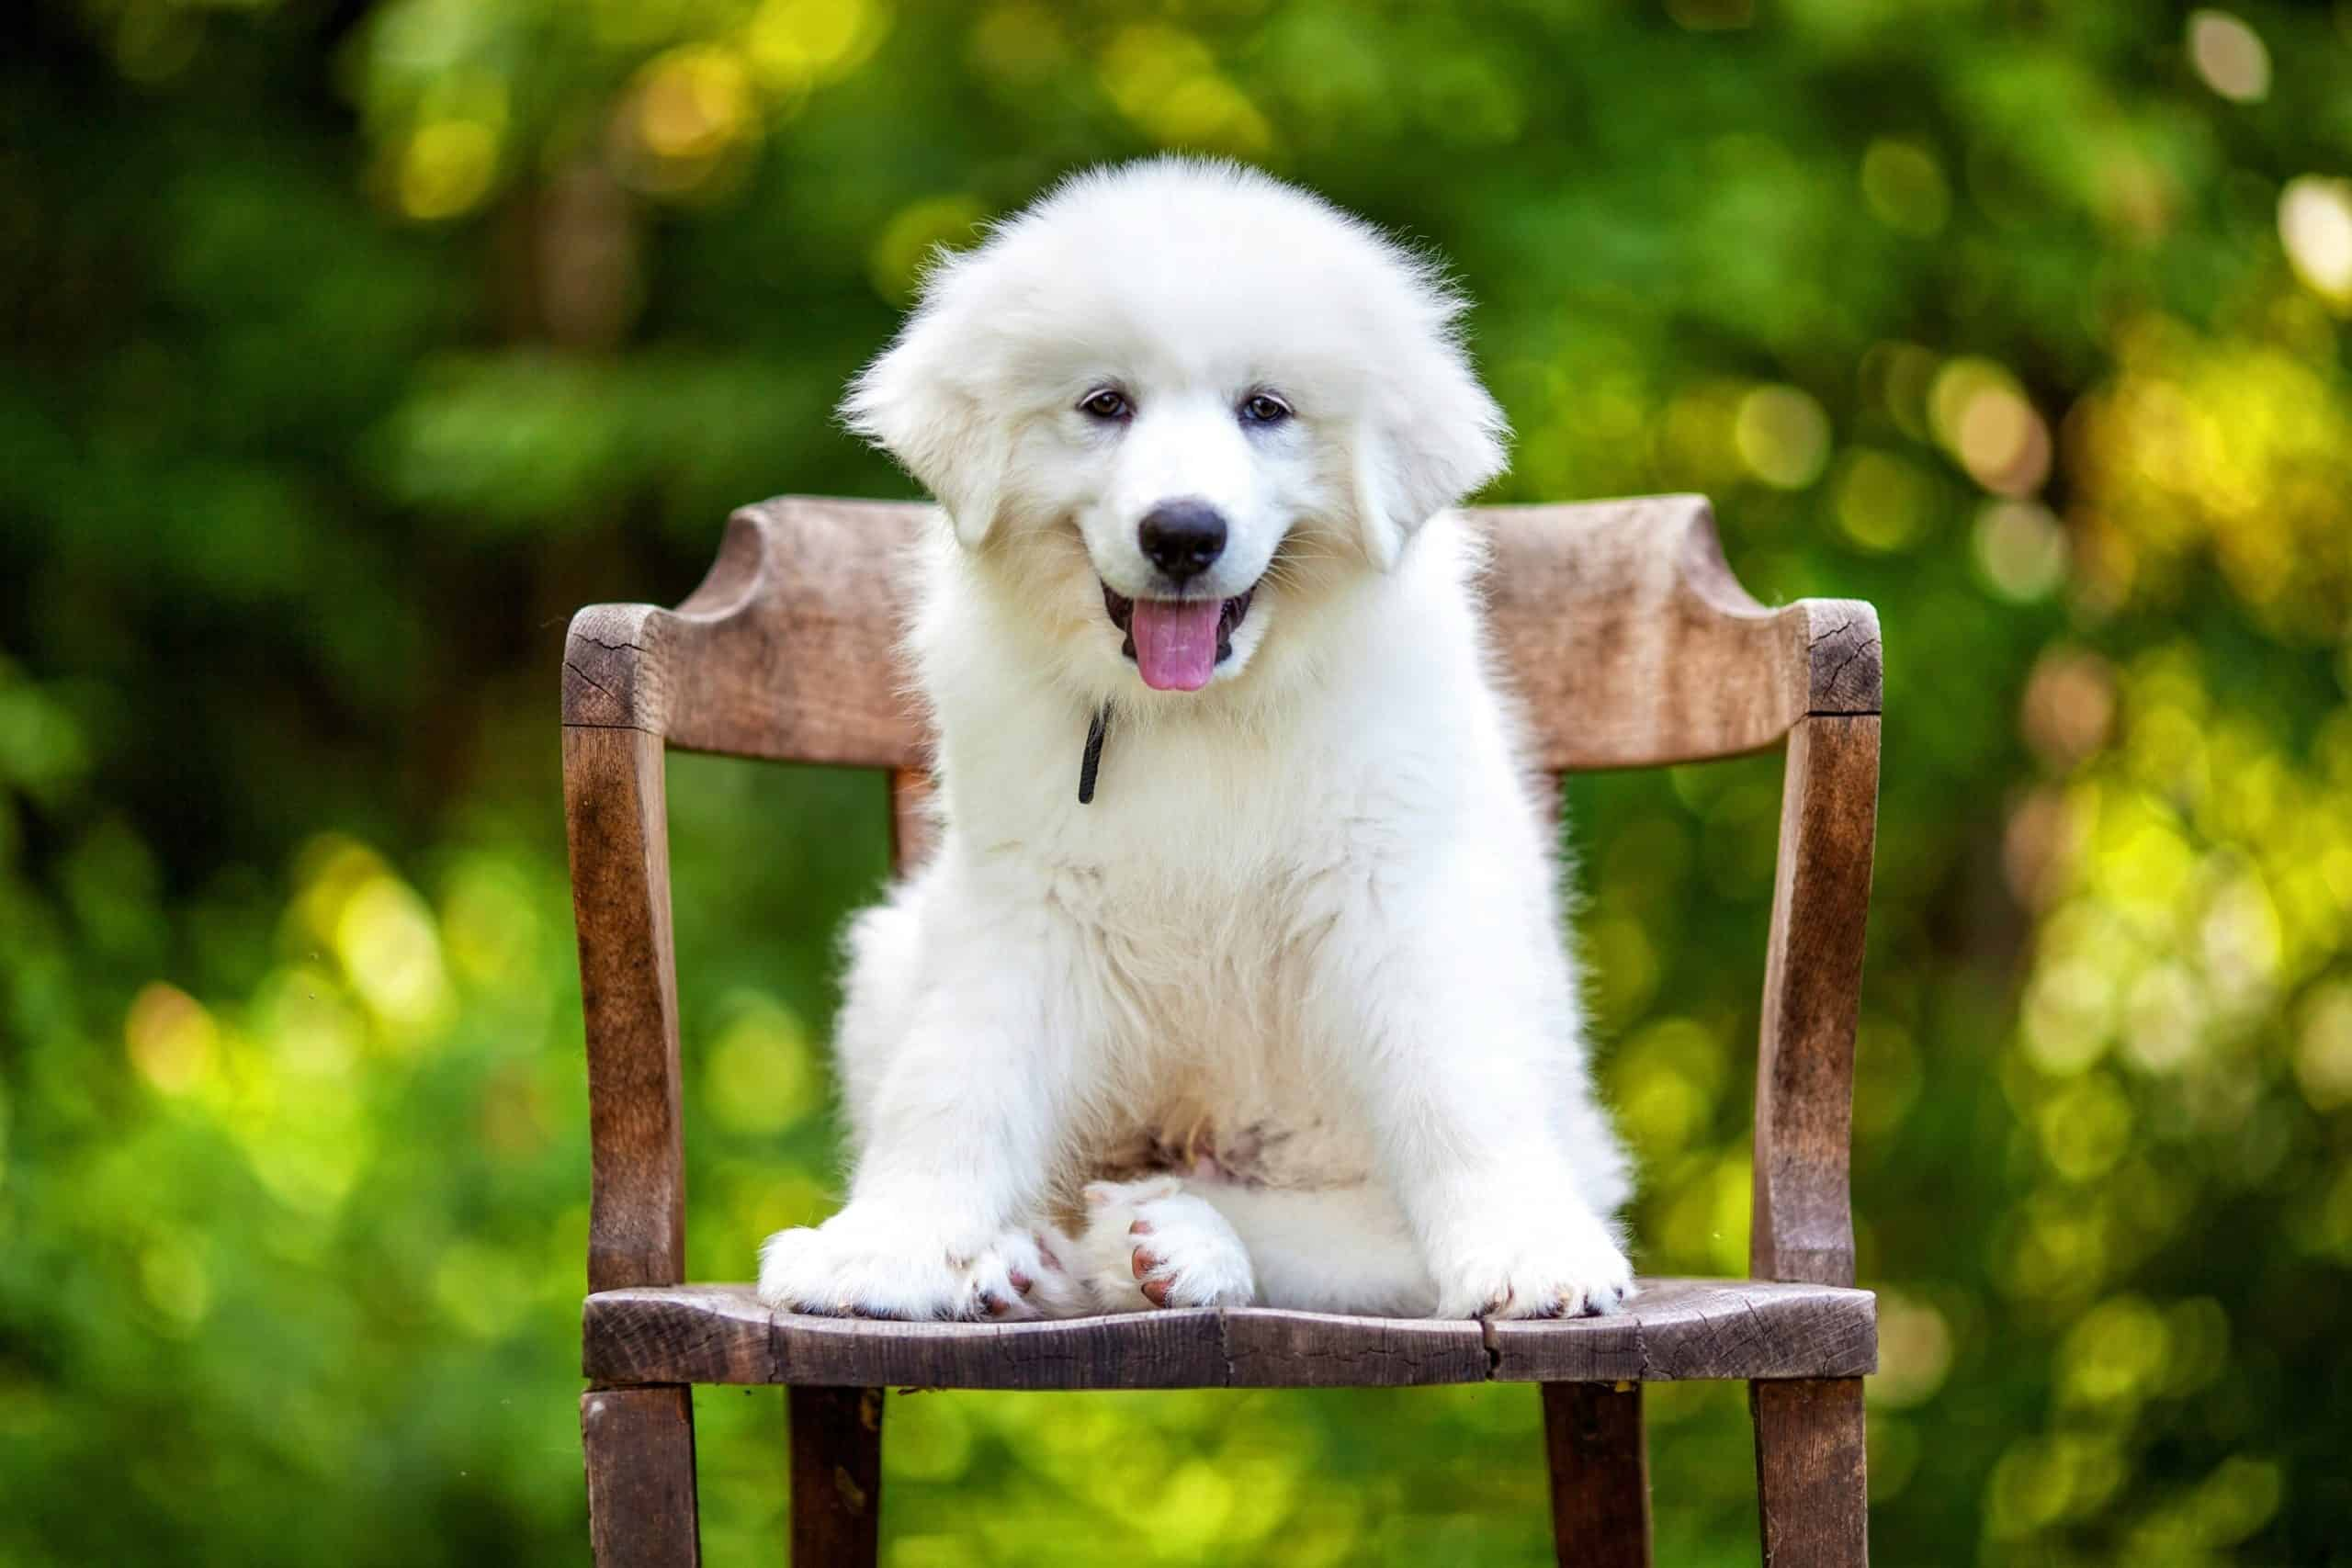 Great Pyrenees puppy sits on a chair. The Great Pyrenees is territorial and protective. They also are nocturnal and have a keen sense of hearing.